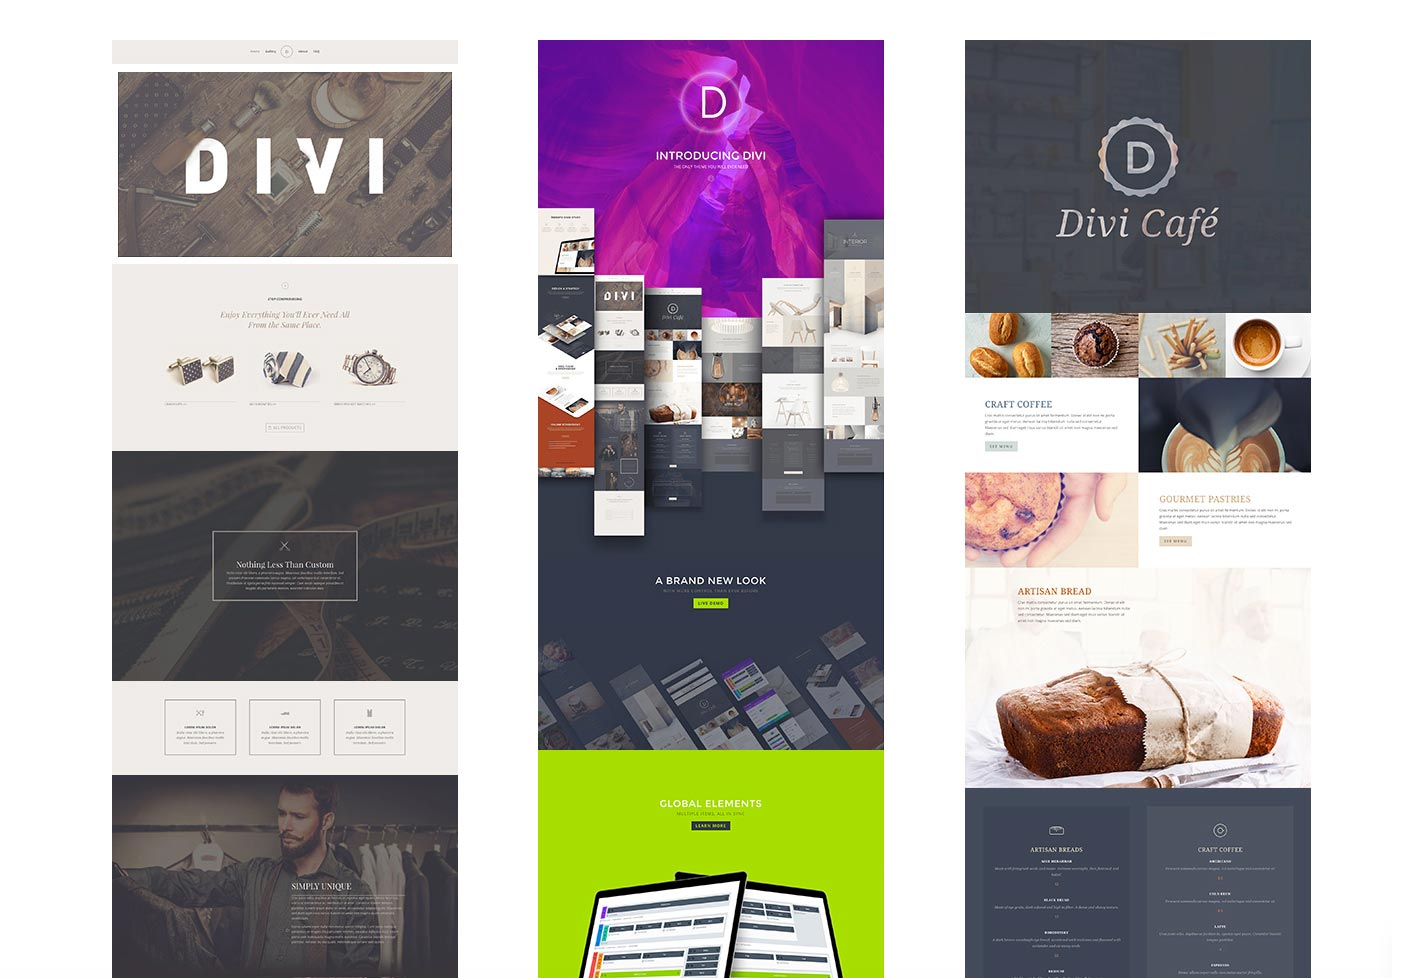 Divi theme variations